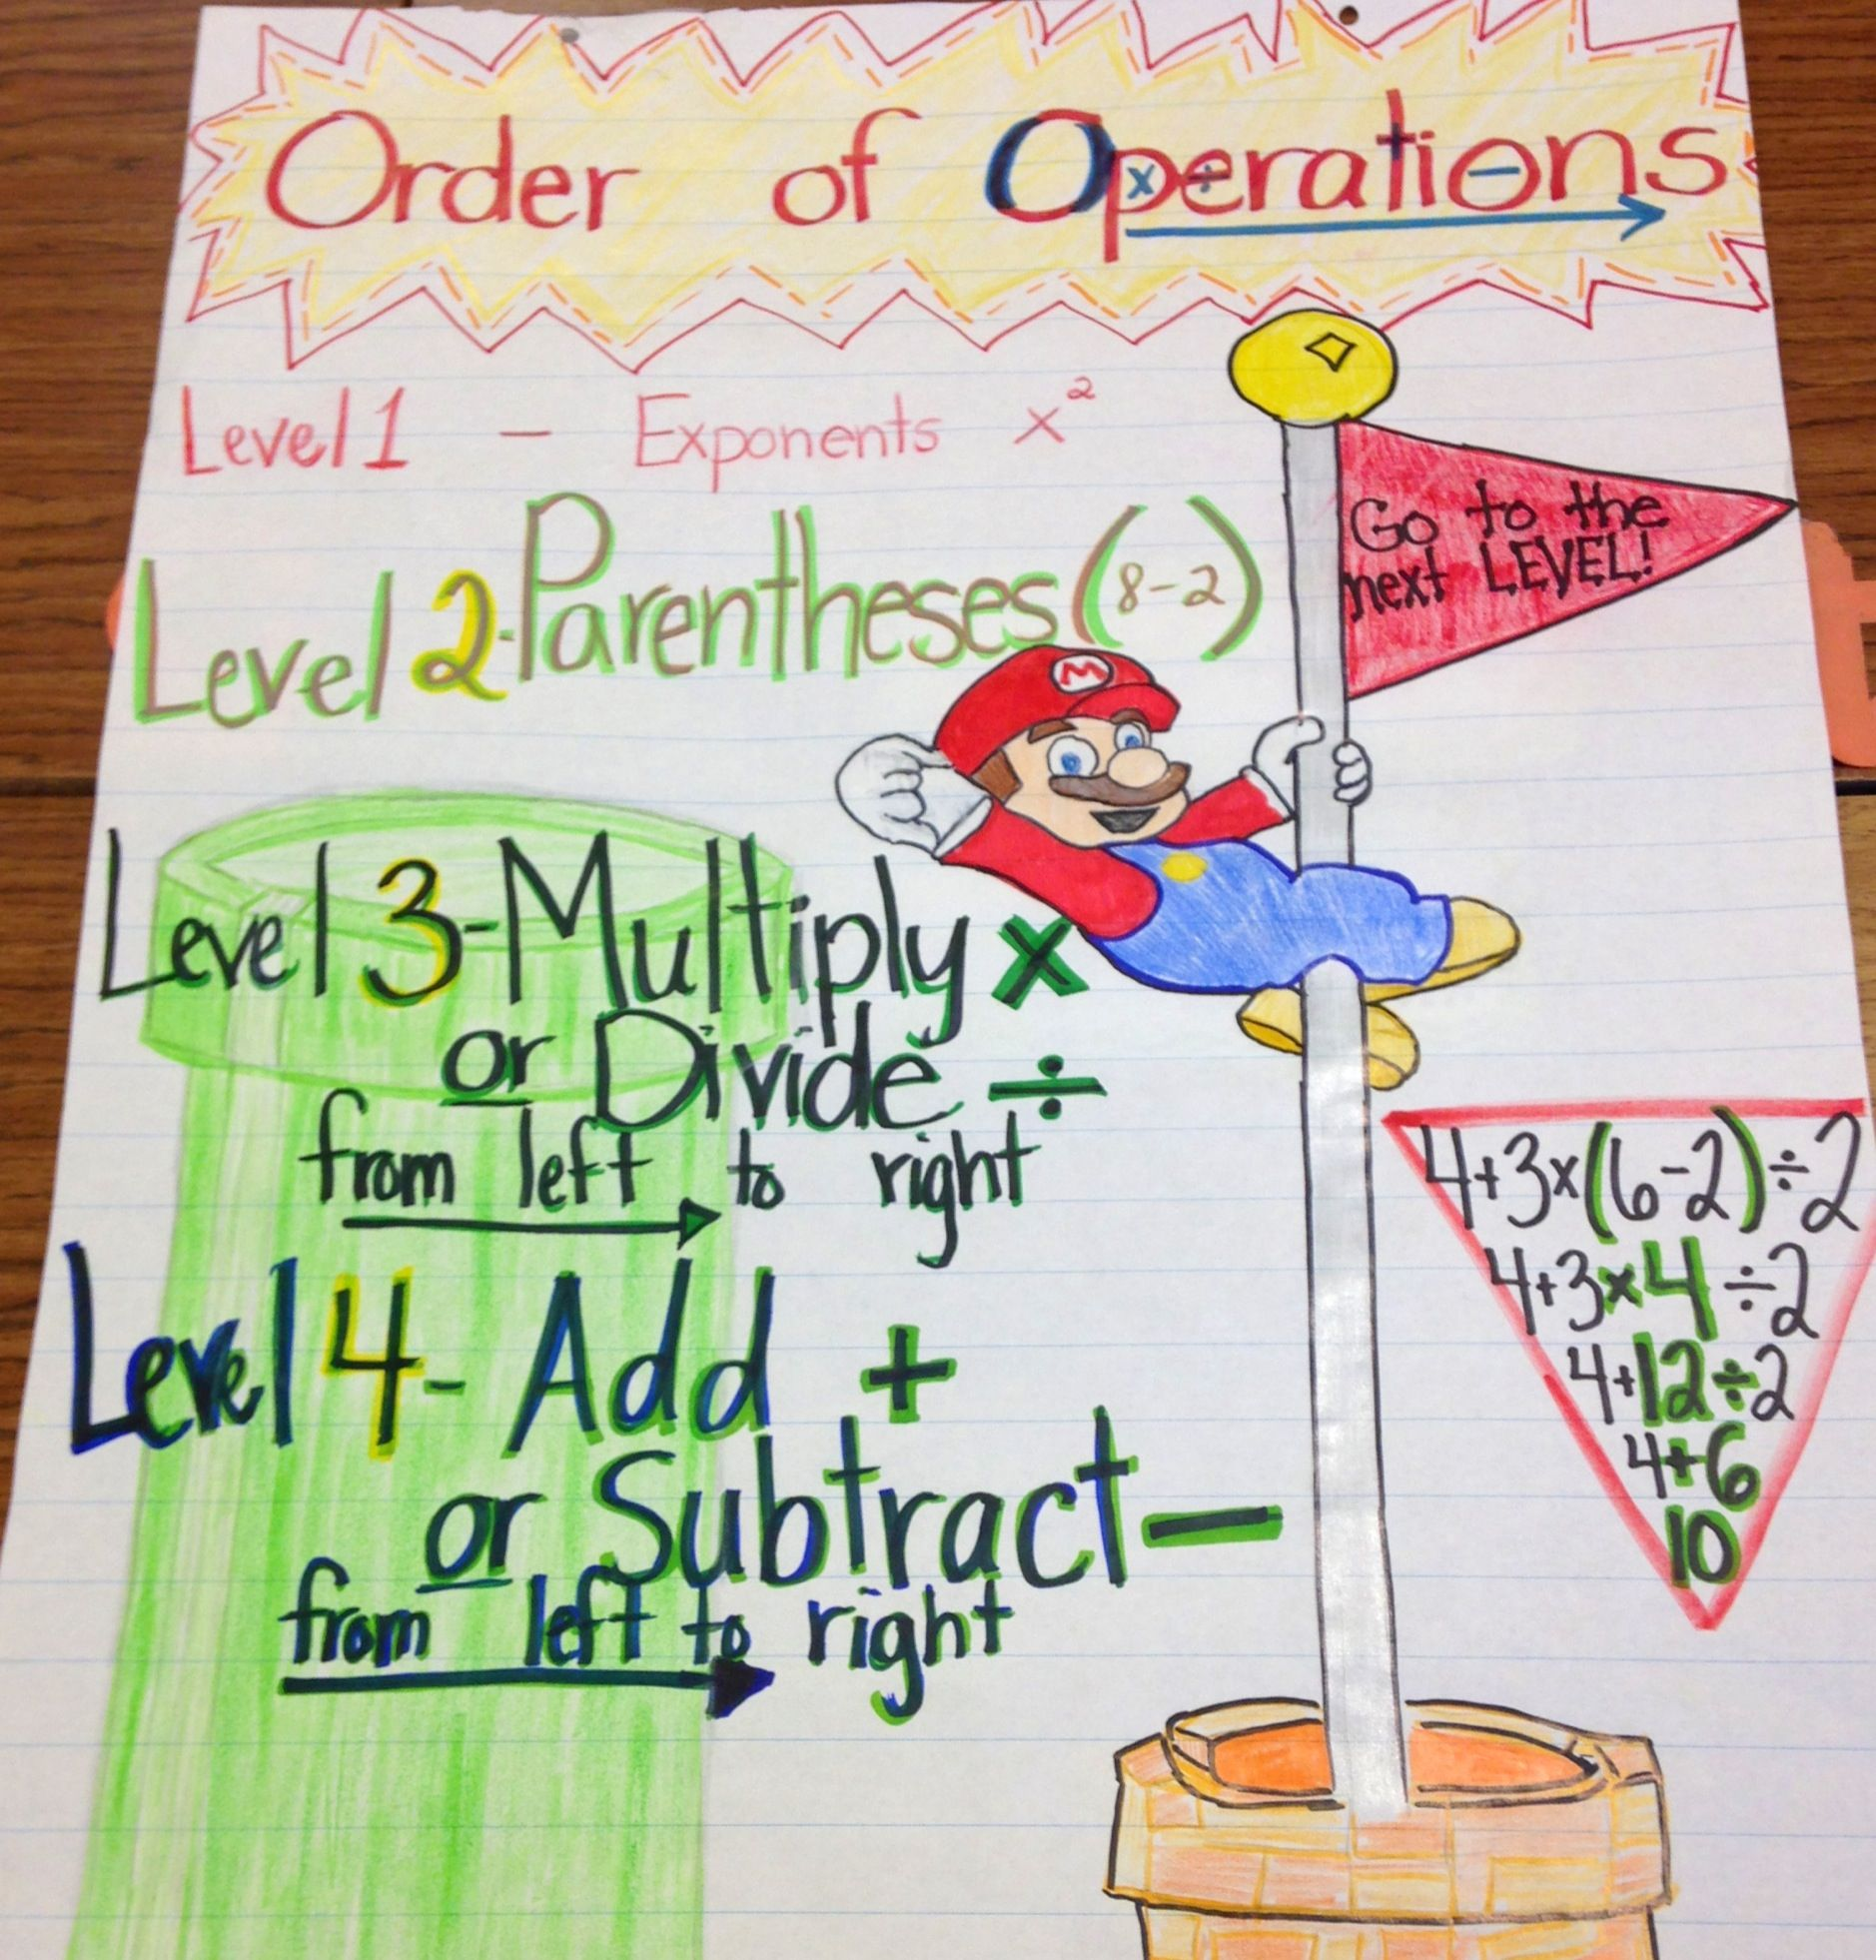 A little out of order, but I like the visuals. Order of operations Anchor  Chart! I made this for my kiddos using the levels rather then PEMDAS.